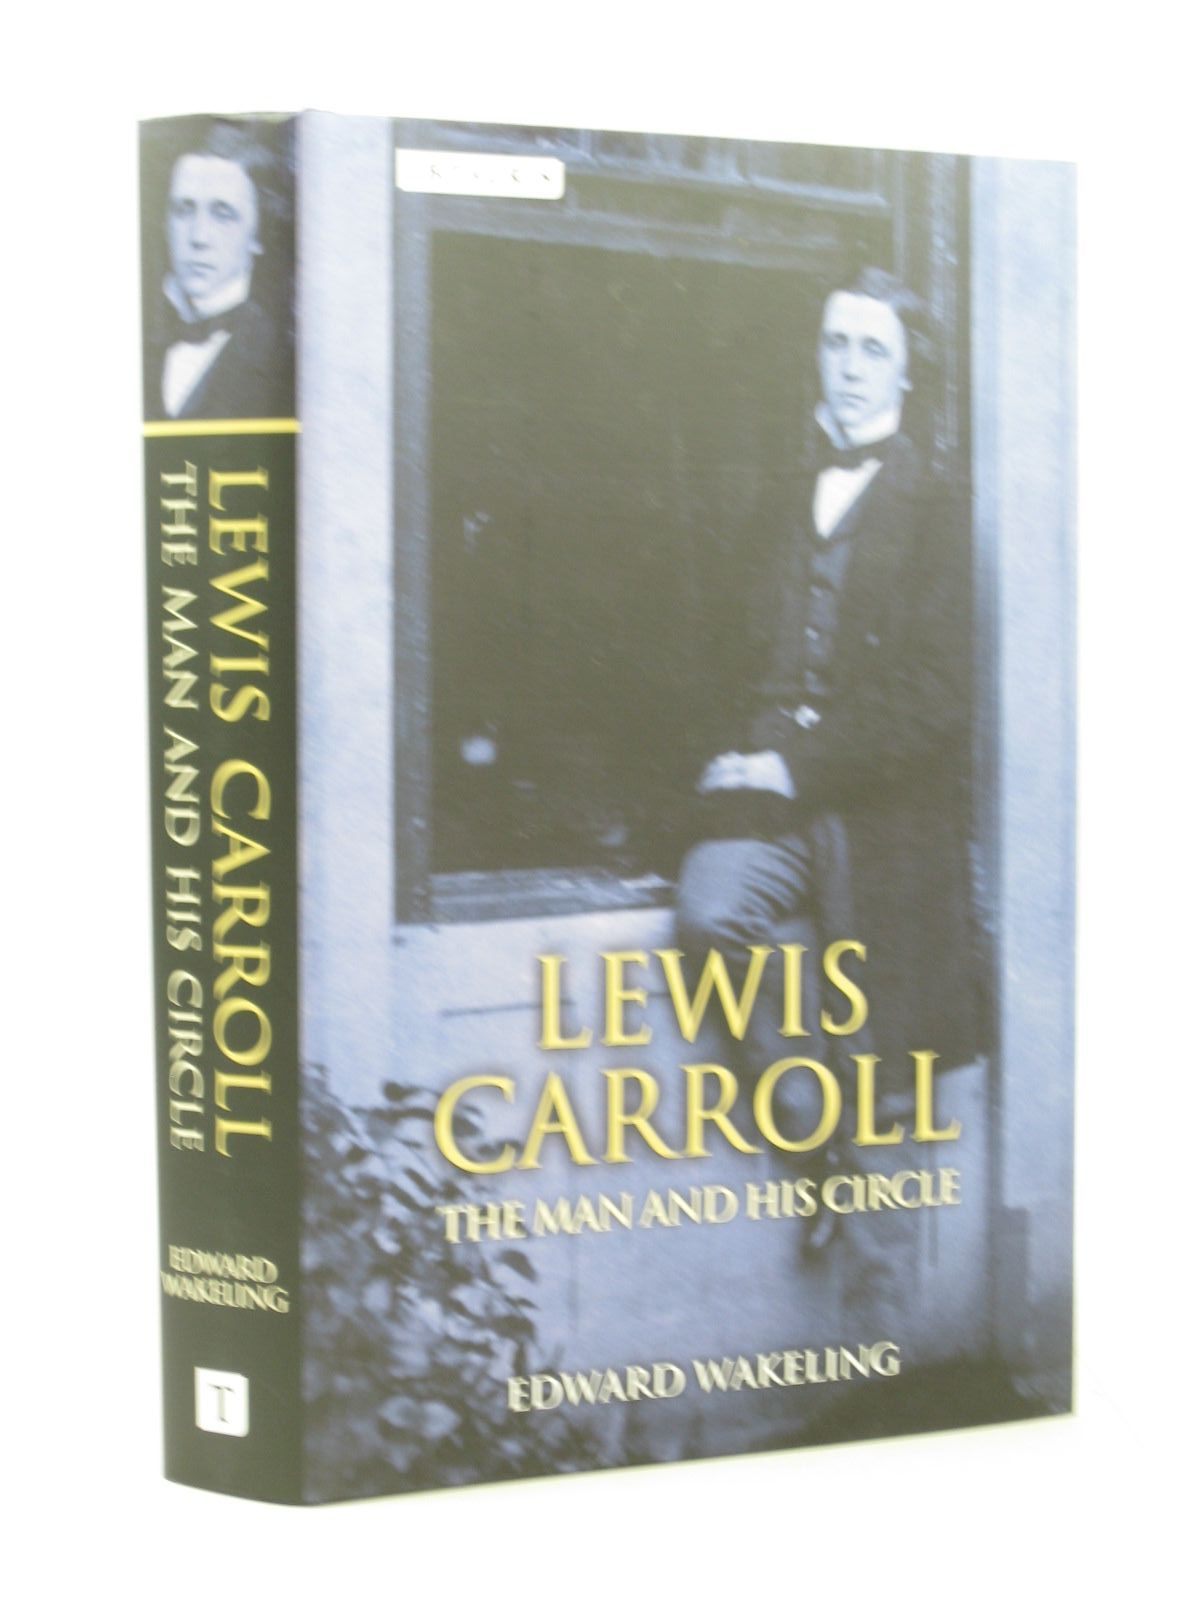 Photo of LEWIS CARROLL THE MAN AND HIS CIRCLE written by Wakeling, Edward published by I.B. Tauris & Co. Ltd. (STOCK CODE: 1503467)  for sale by Stella & Rose's Books